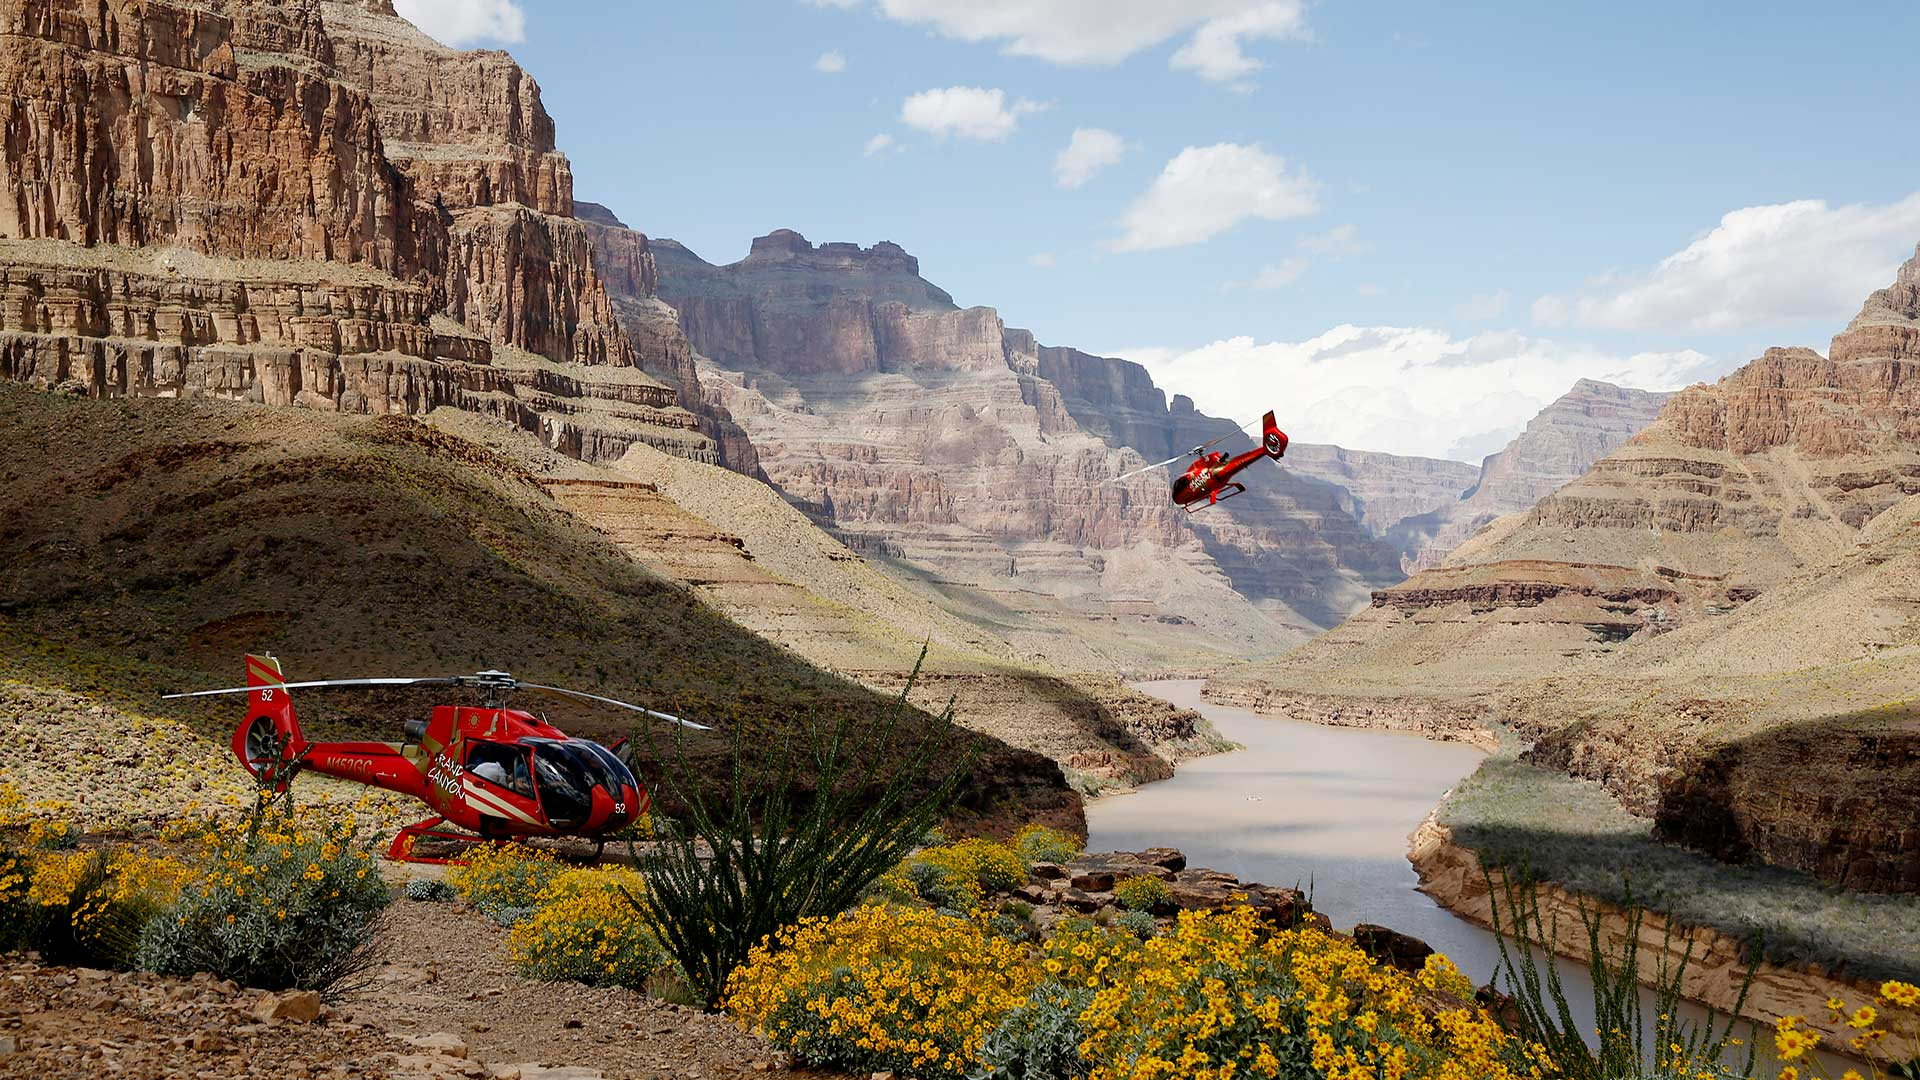 Two helicopters landing on the floor of the Grand Canyon West.